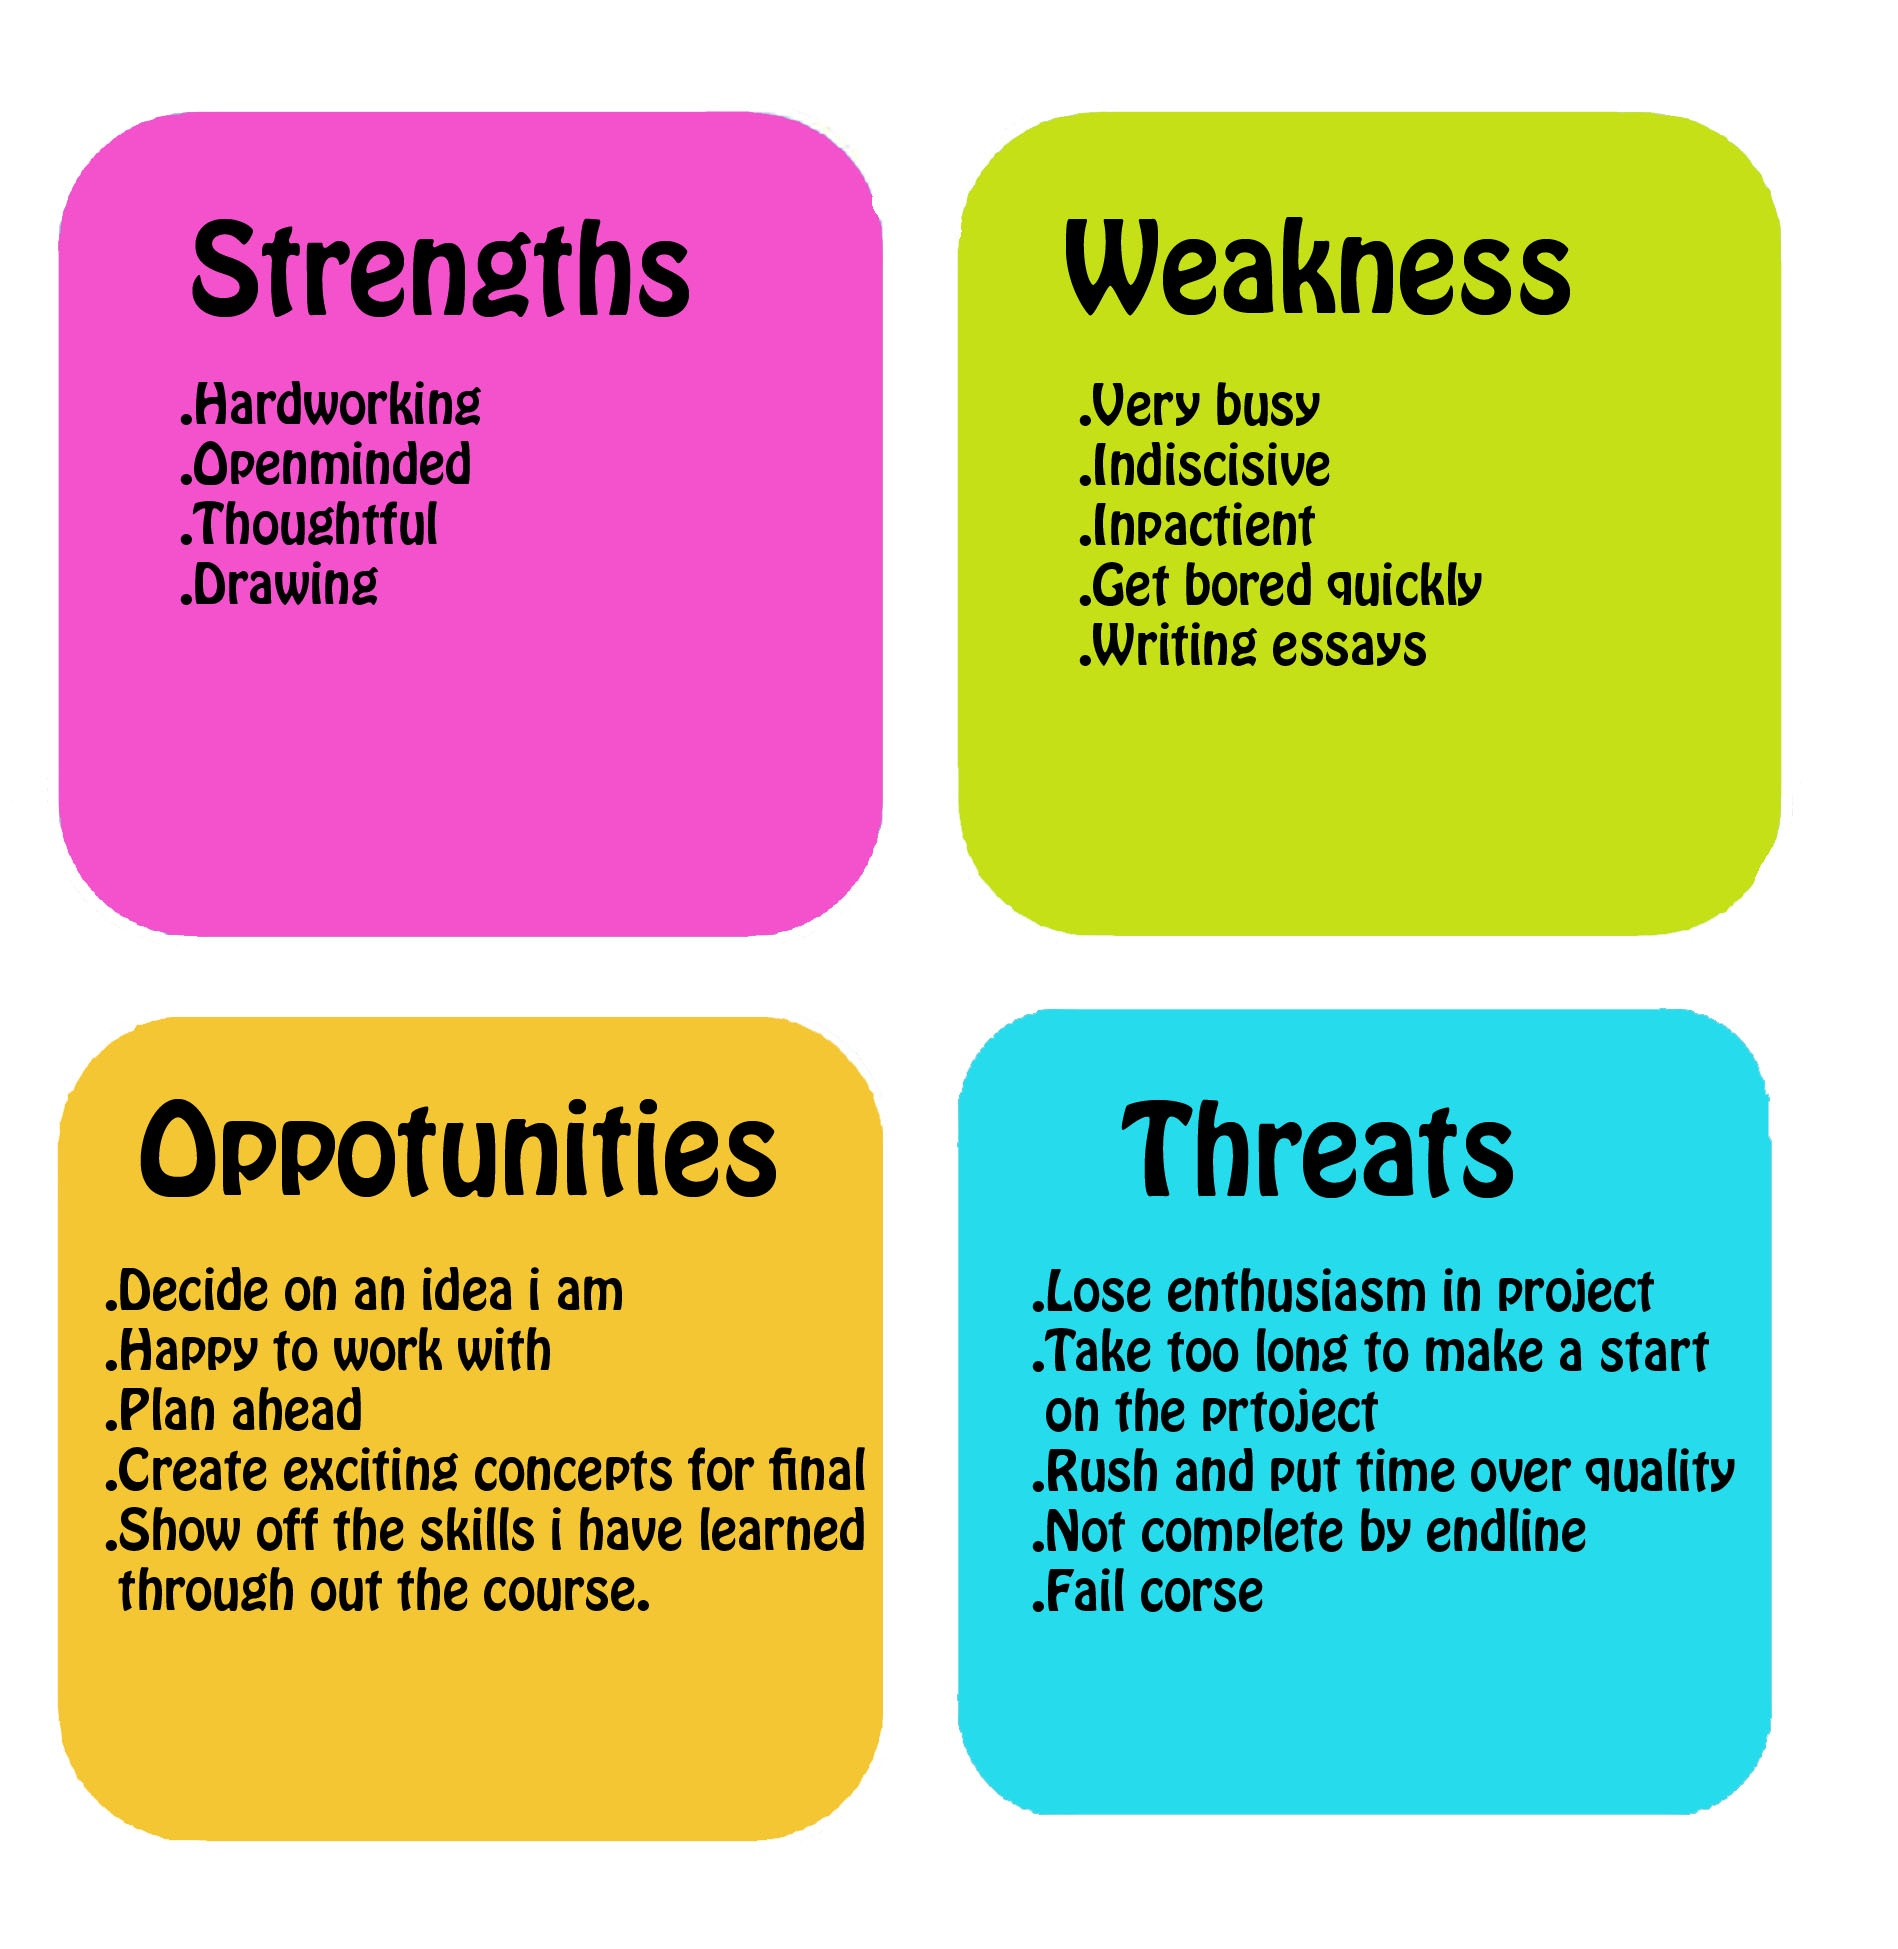 Pest Analysis Zara Swot Analysis Zara Swot Analyses Strategic